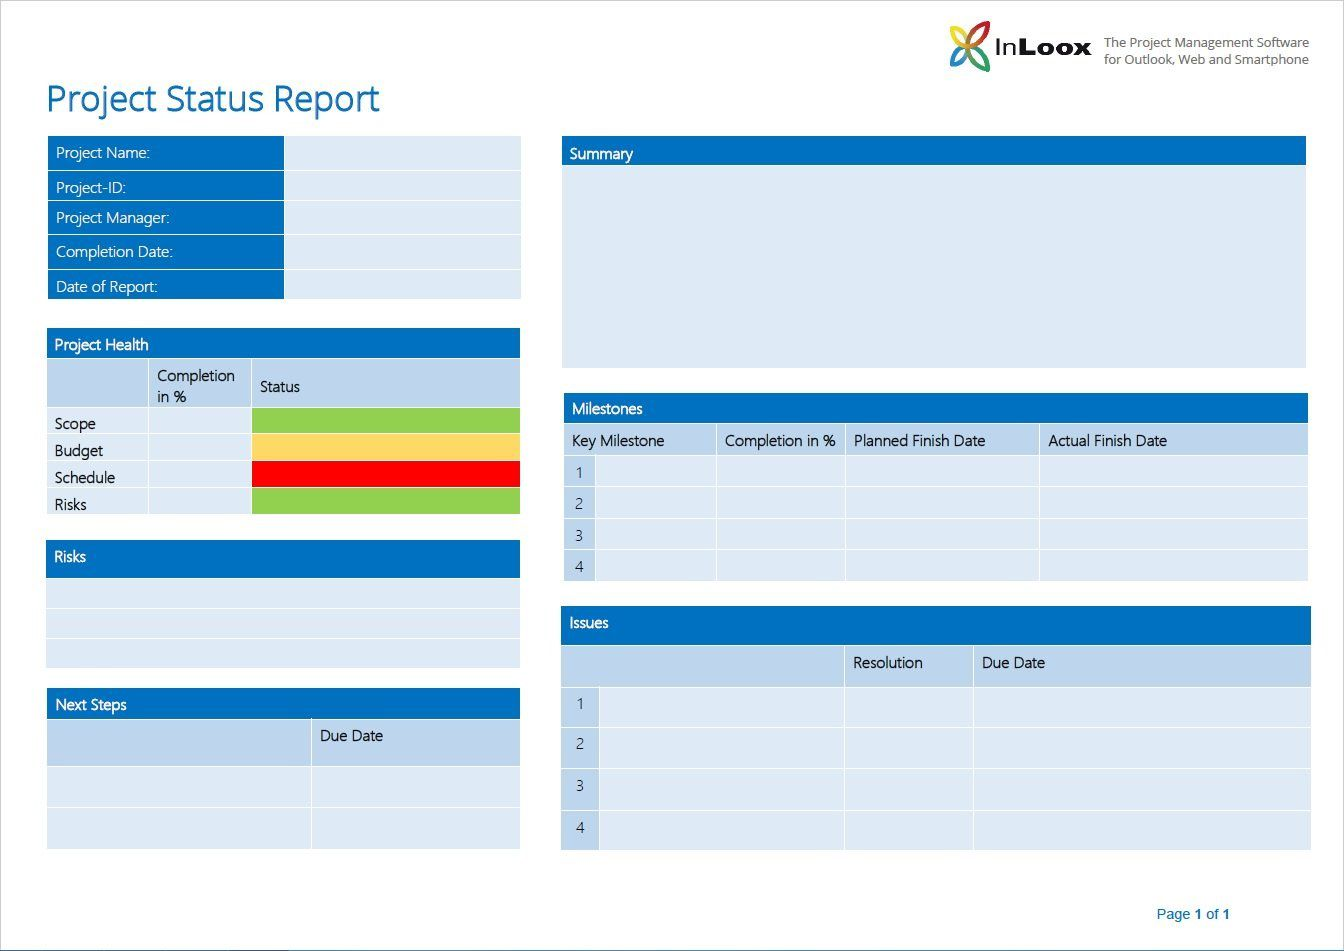 006 Excellent Project Management Weekly Statu Report Sample High Definition  Template Excel PptFull